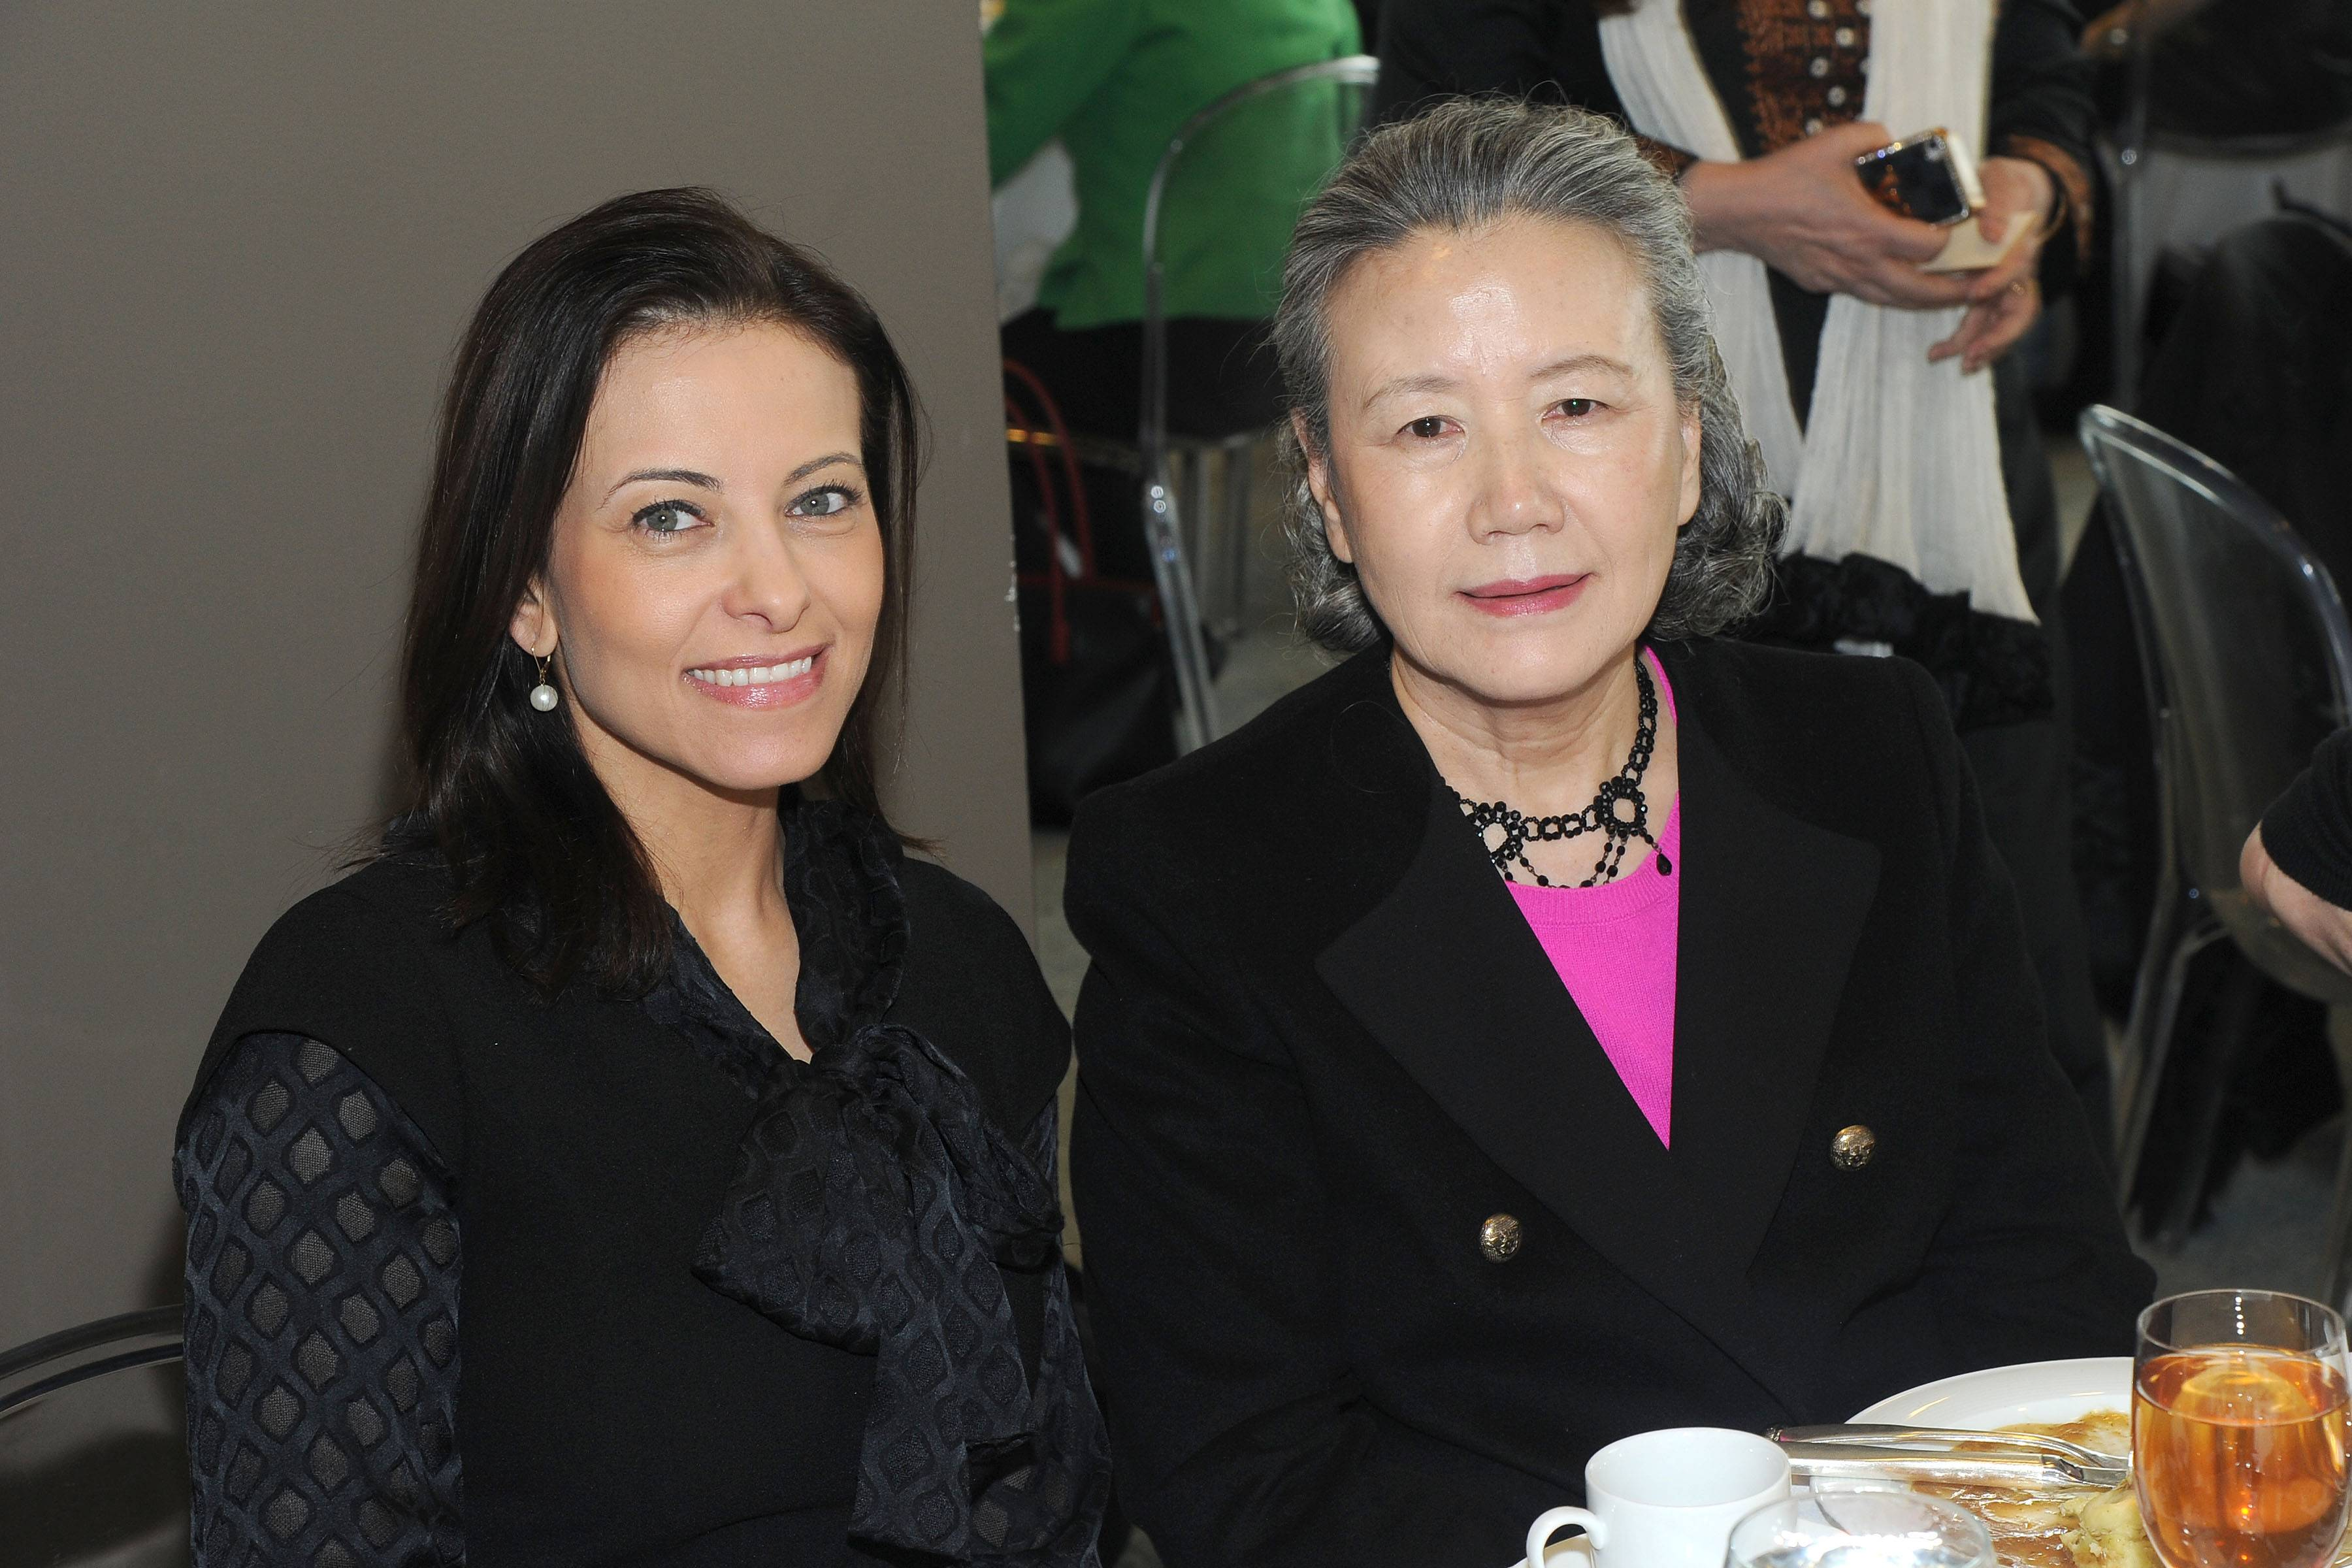 UN Women For Peace's Annual March in March 2014 Awards Luncheon